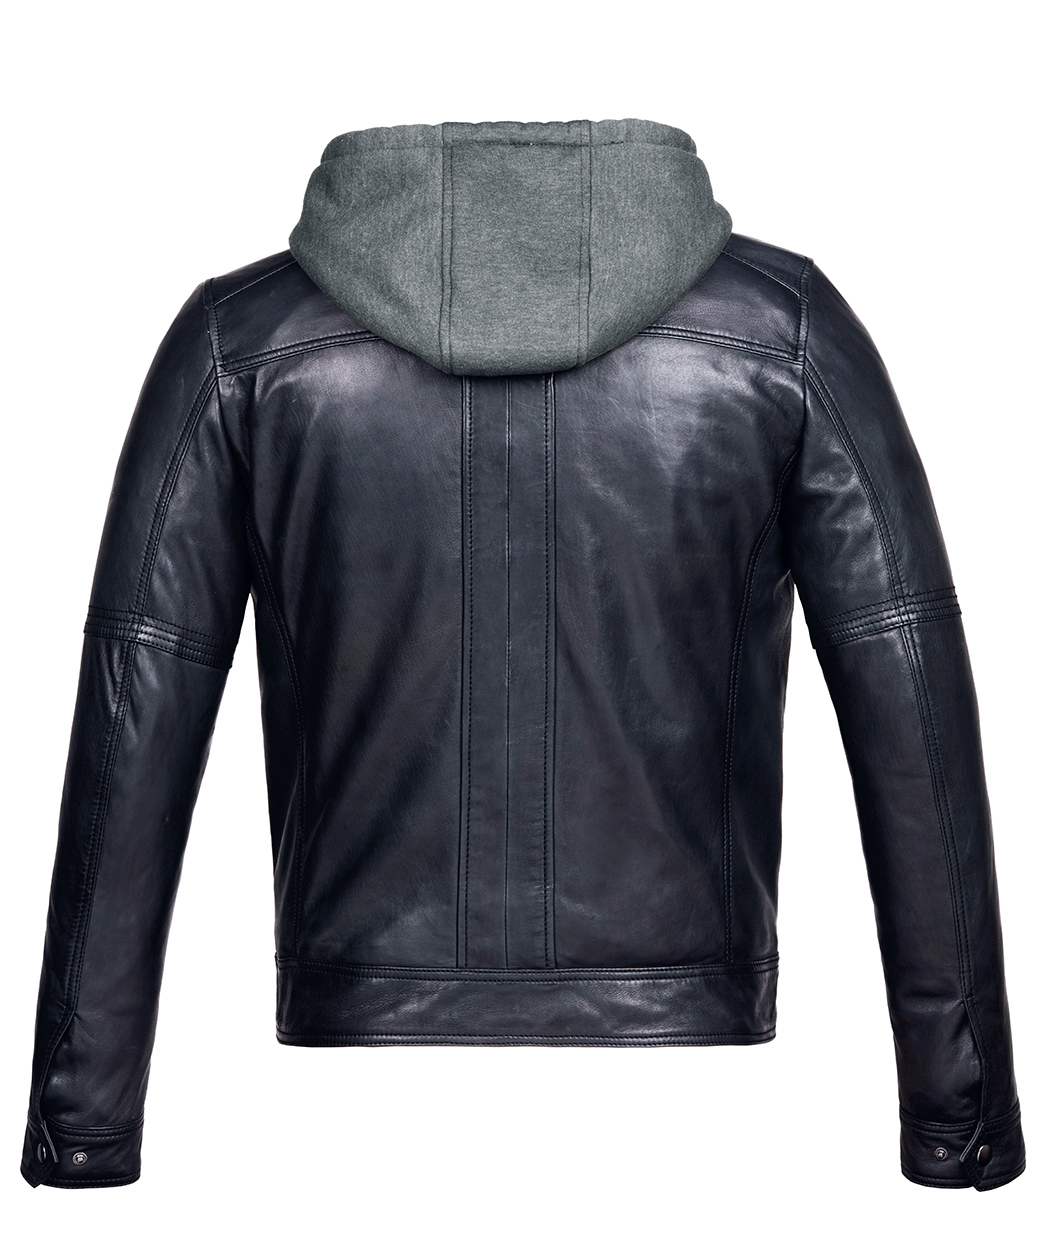 Mens Leather Jacket with Hood Vintage Black Bomber - Genuine Leather